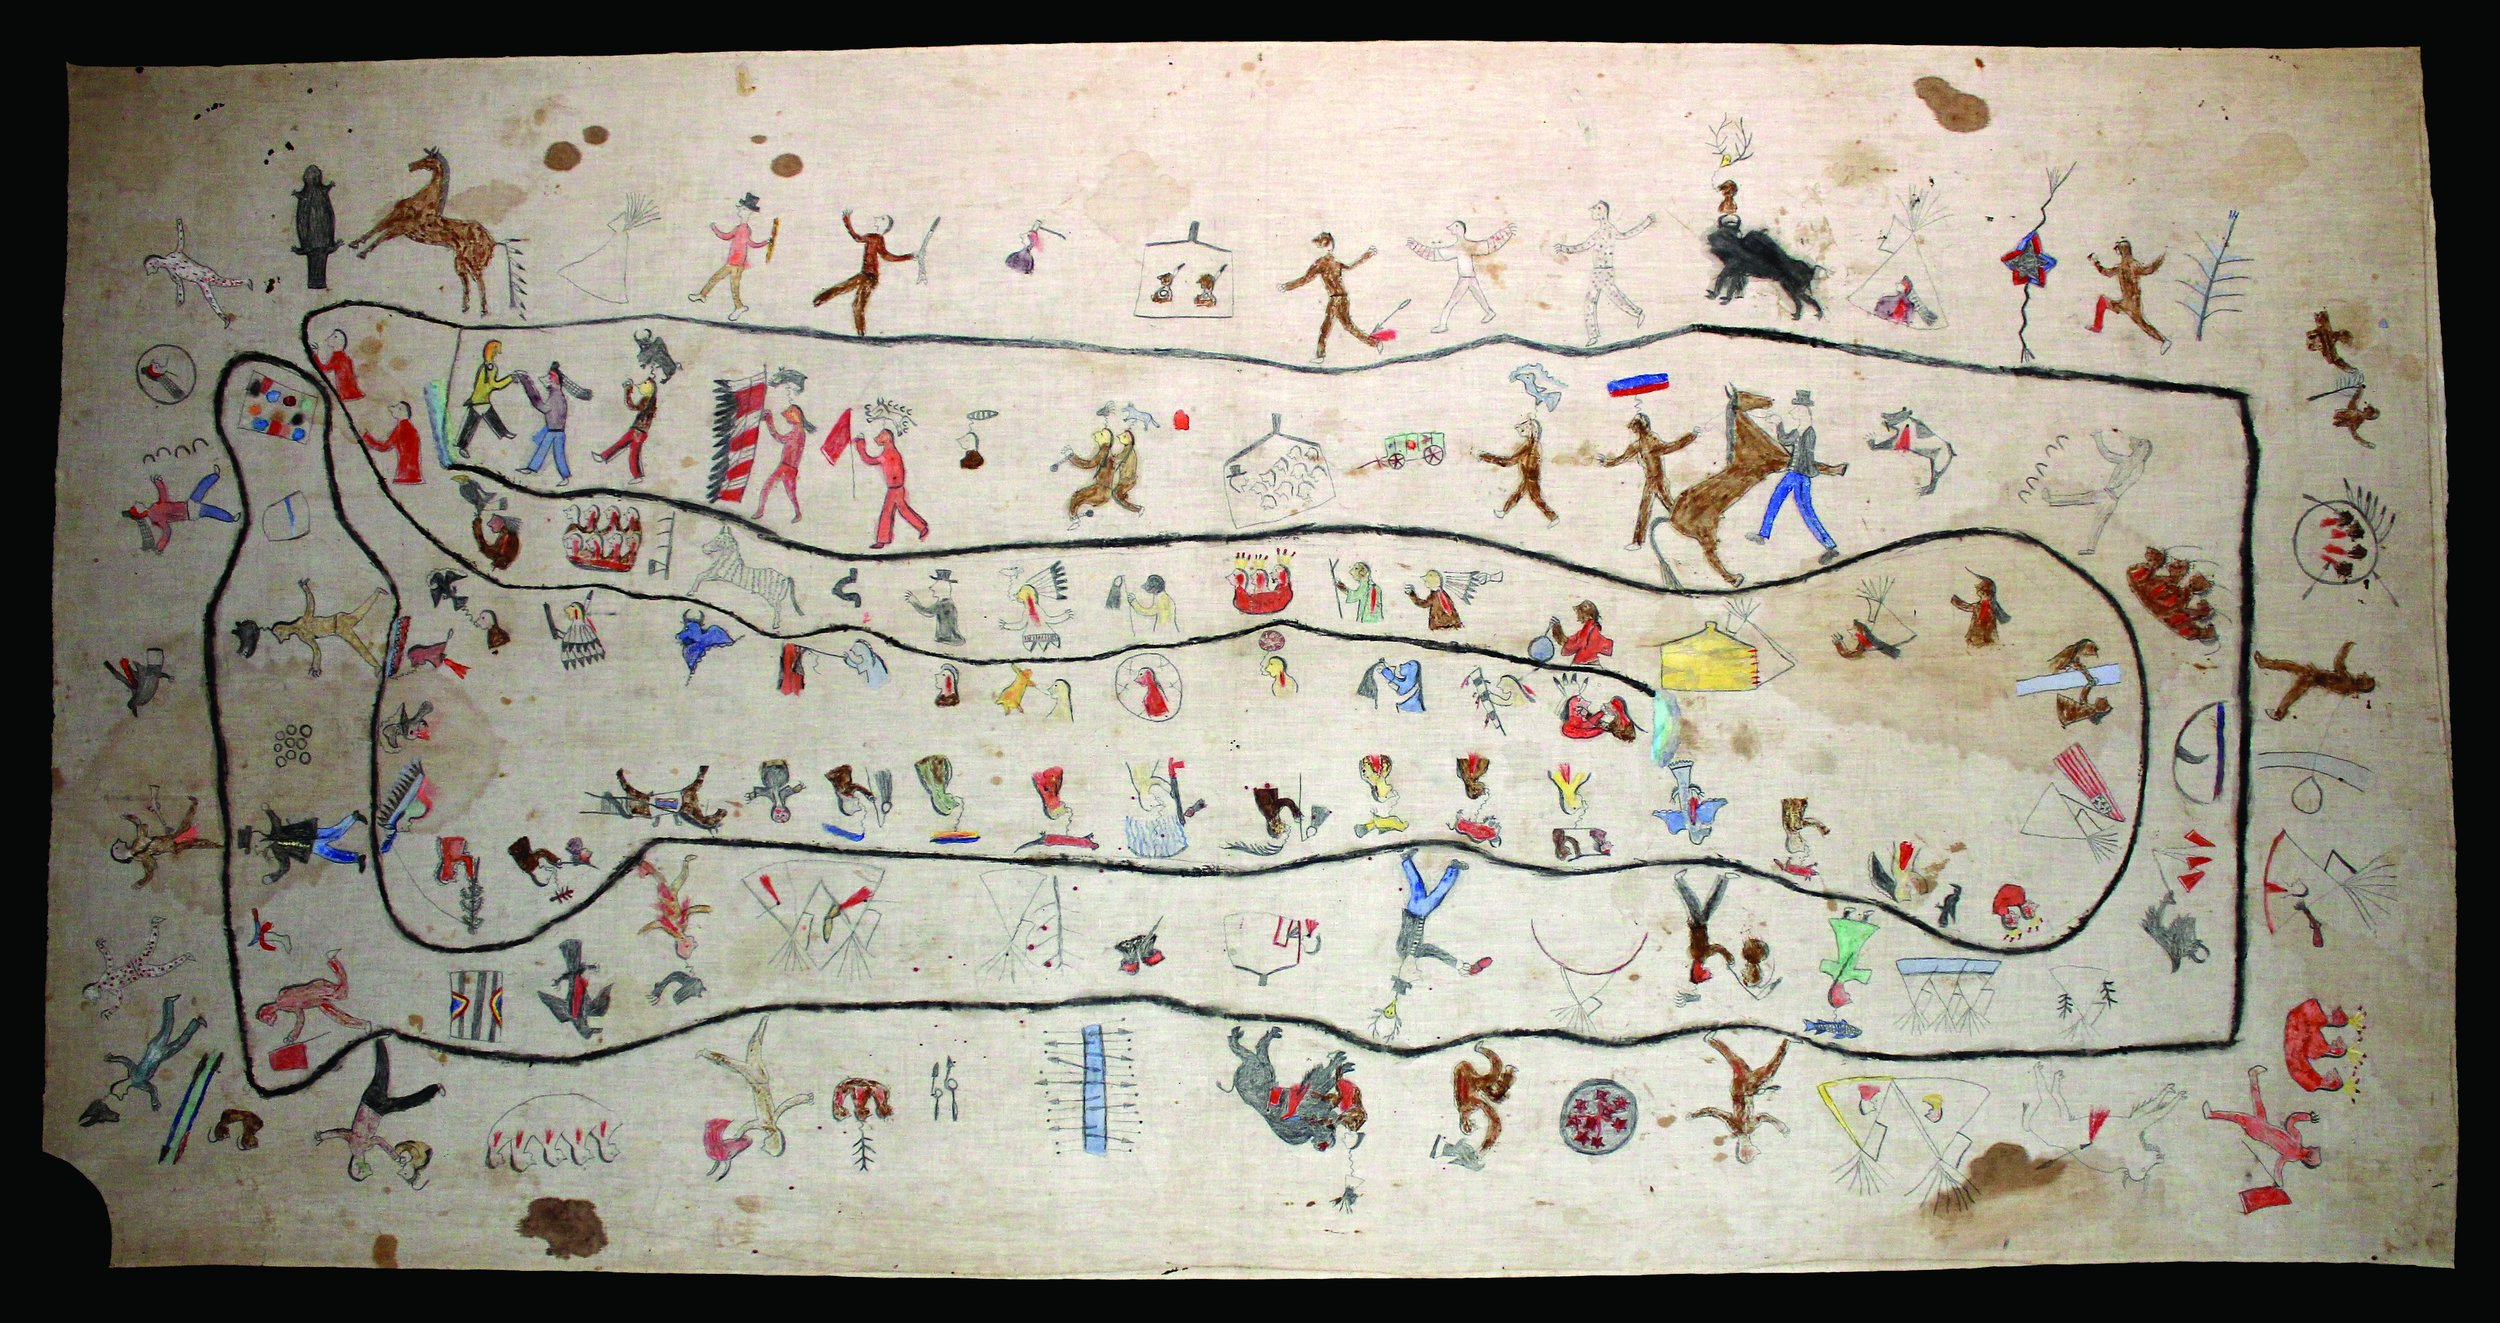 The Wajaje Winter Count, (ca. late 1800s) provides the early history of the southern Teton Lakota tribes, documenting 1758-1759 through 1885-1886.